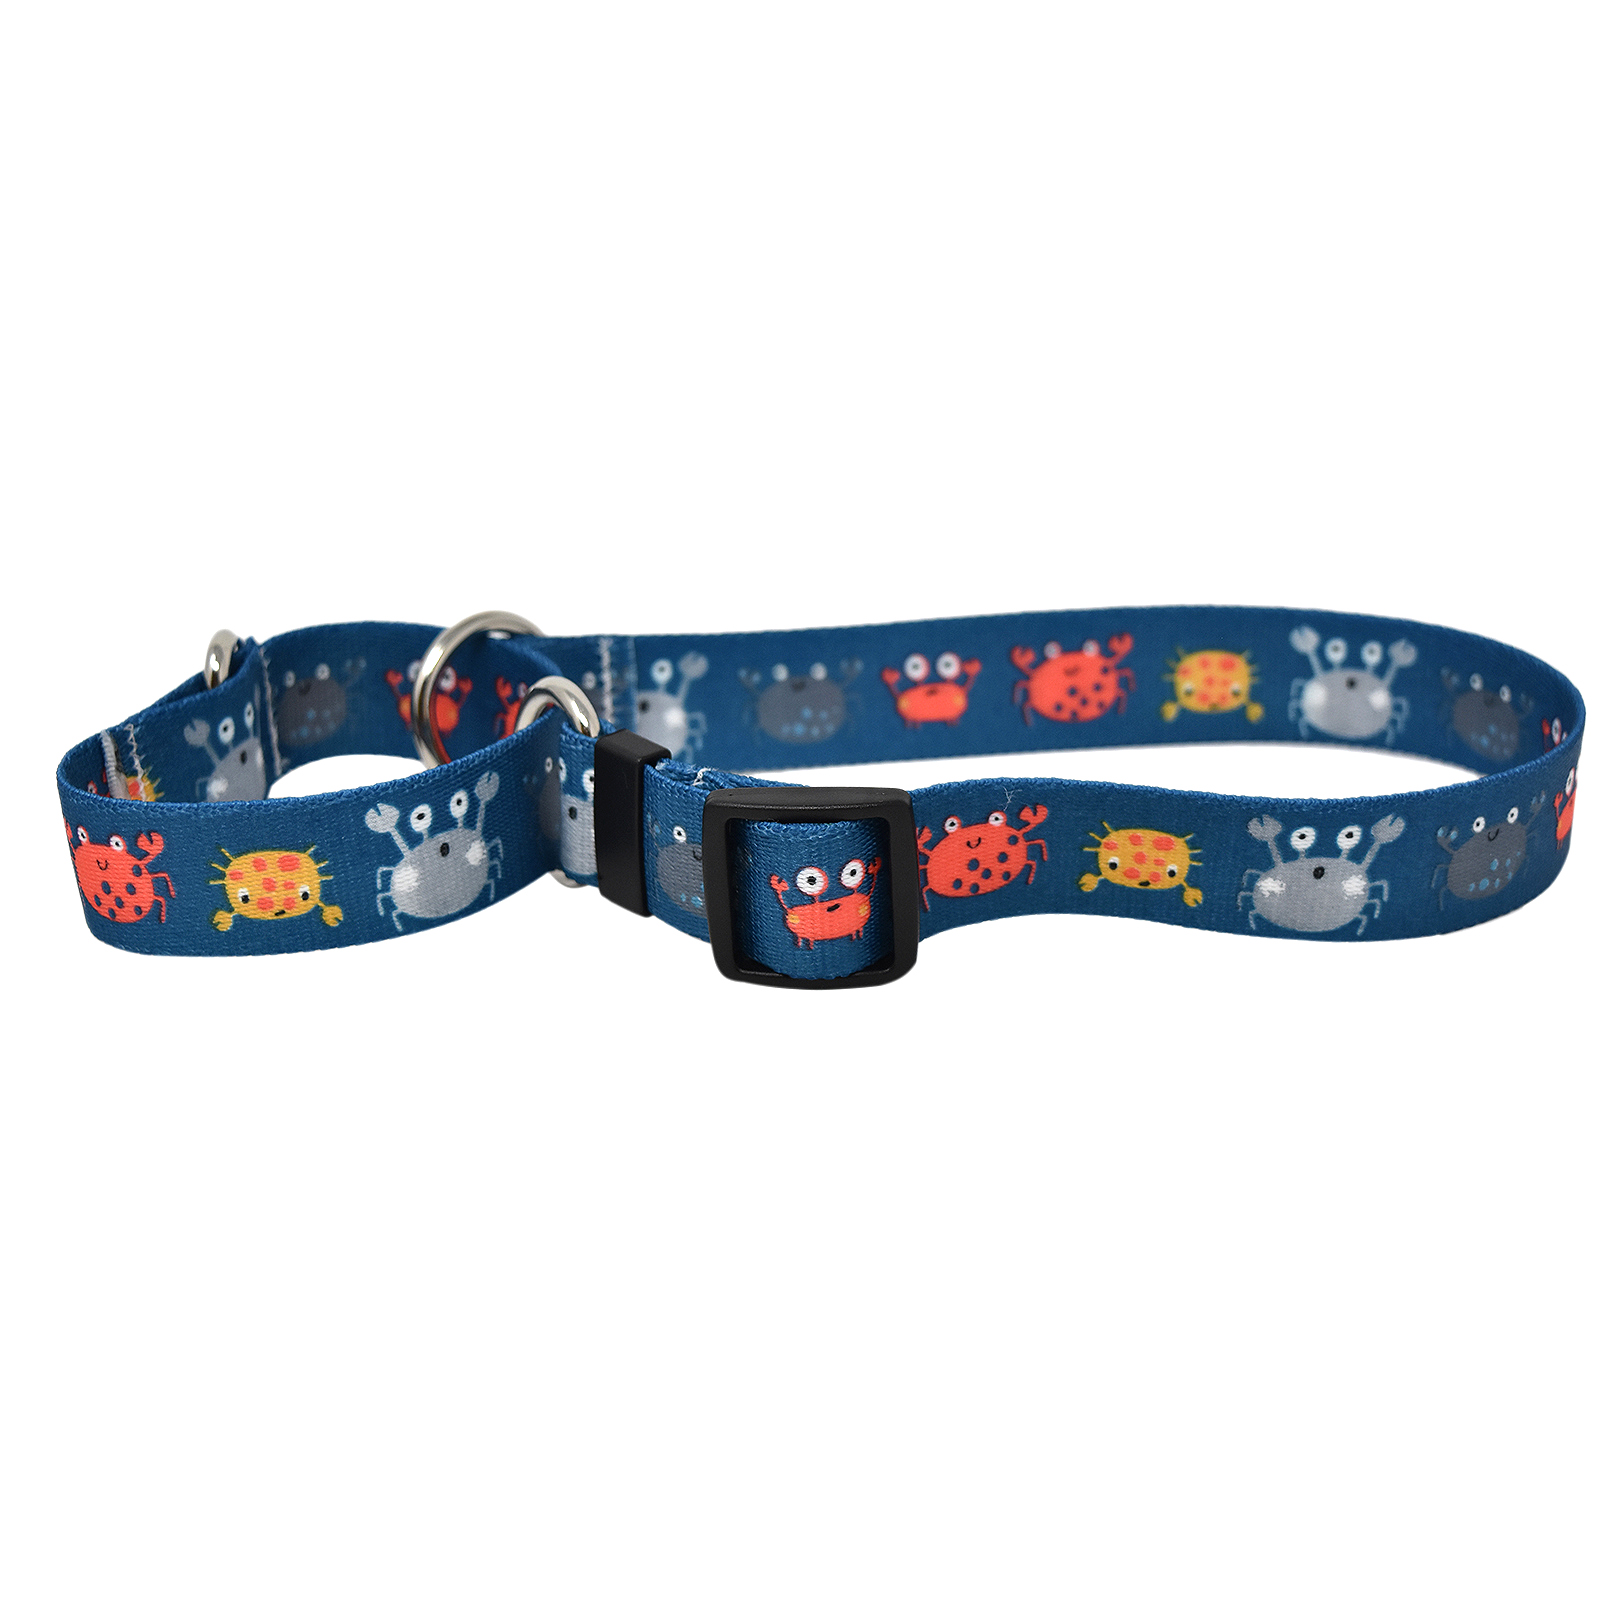 Crustacean Crew Martingale Collar